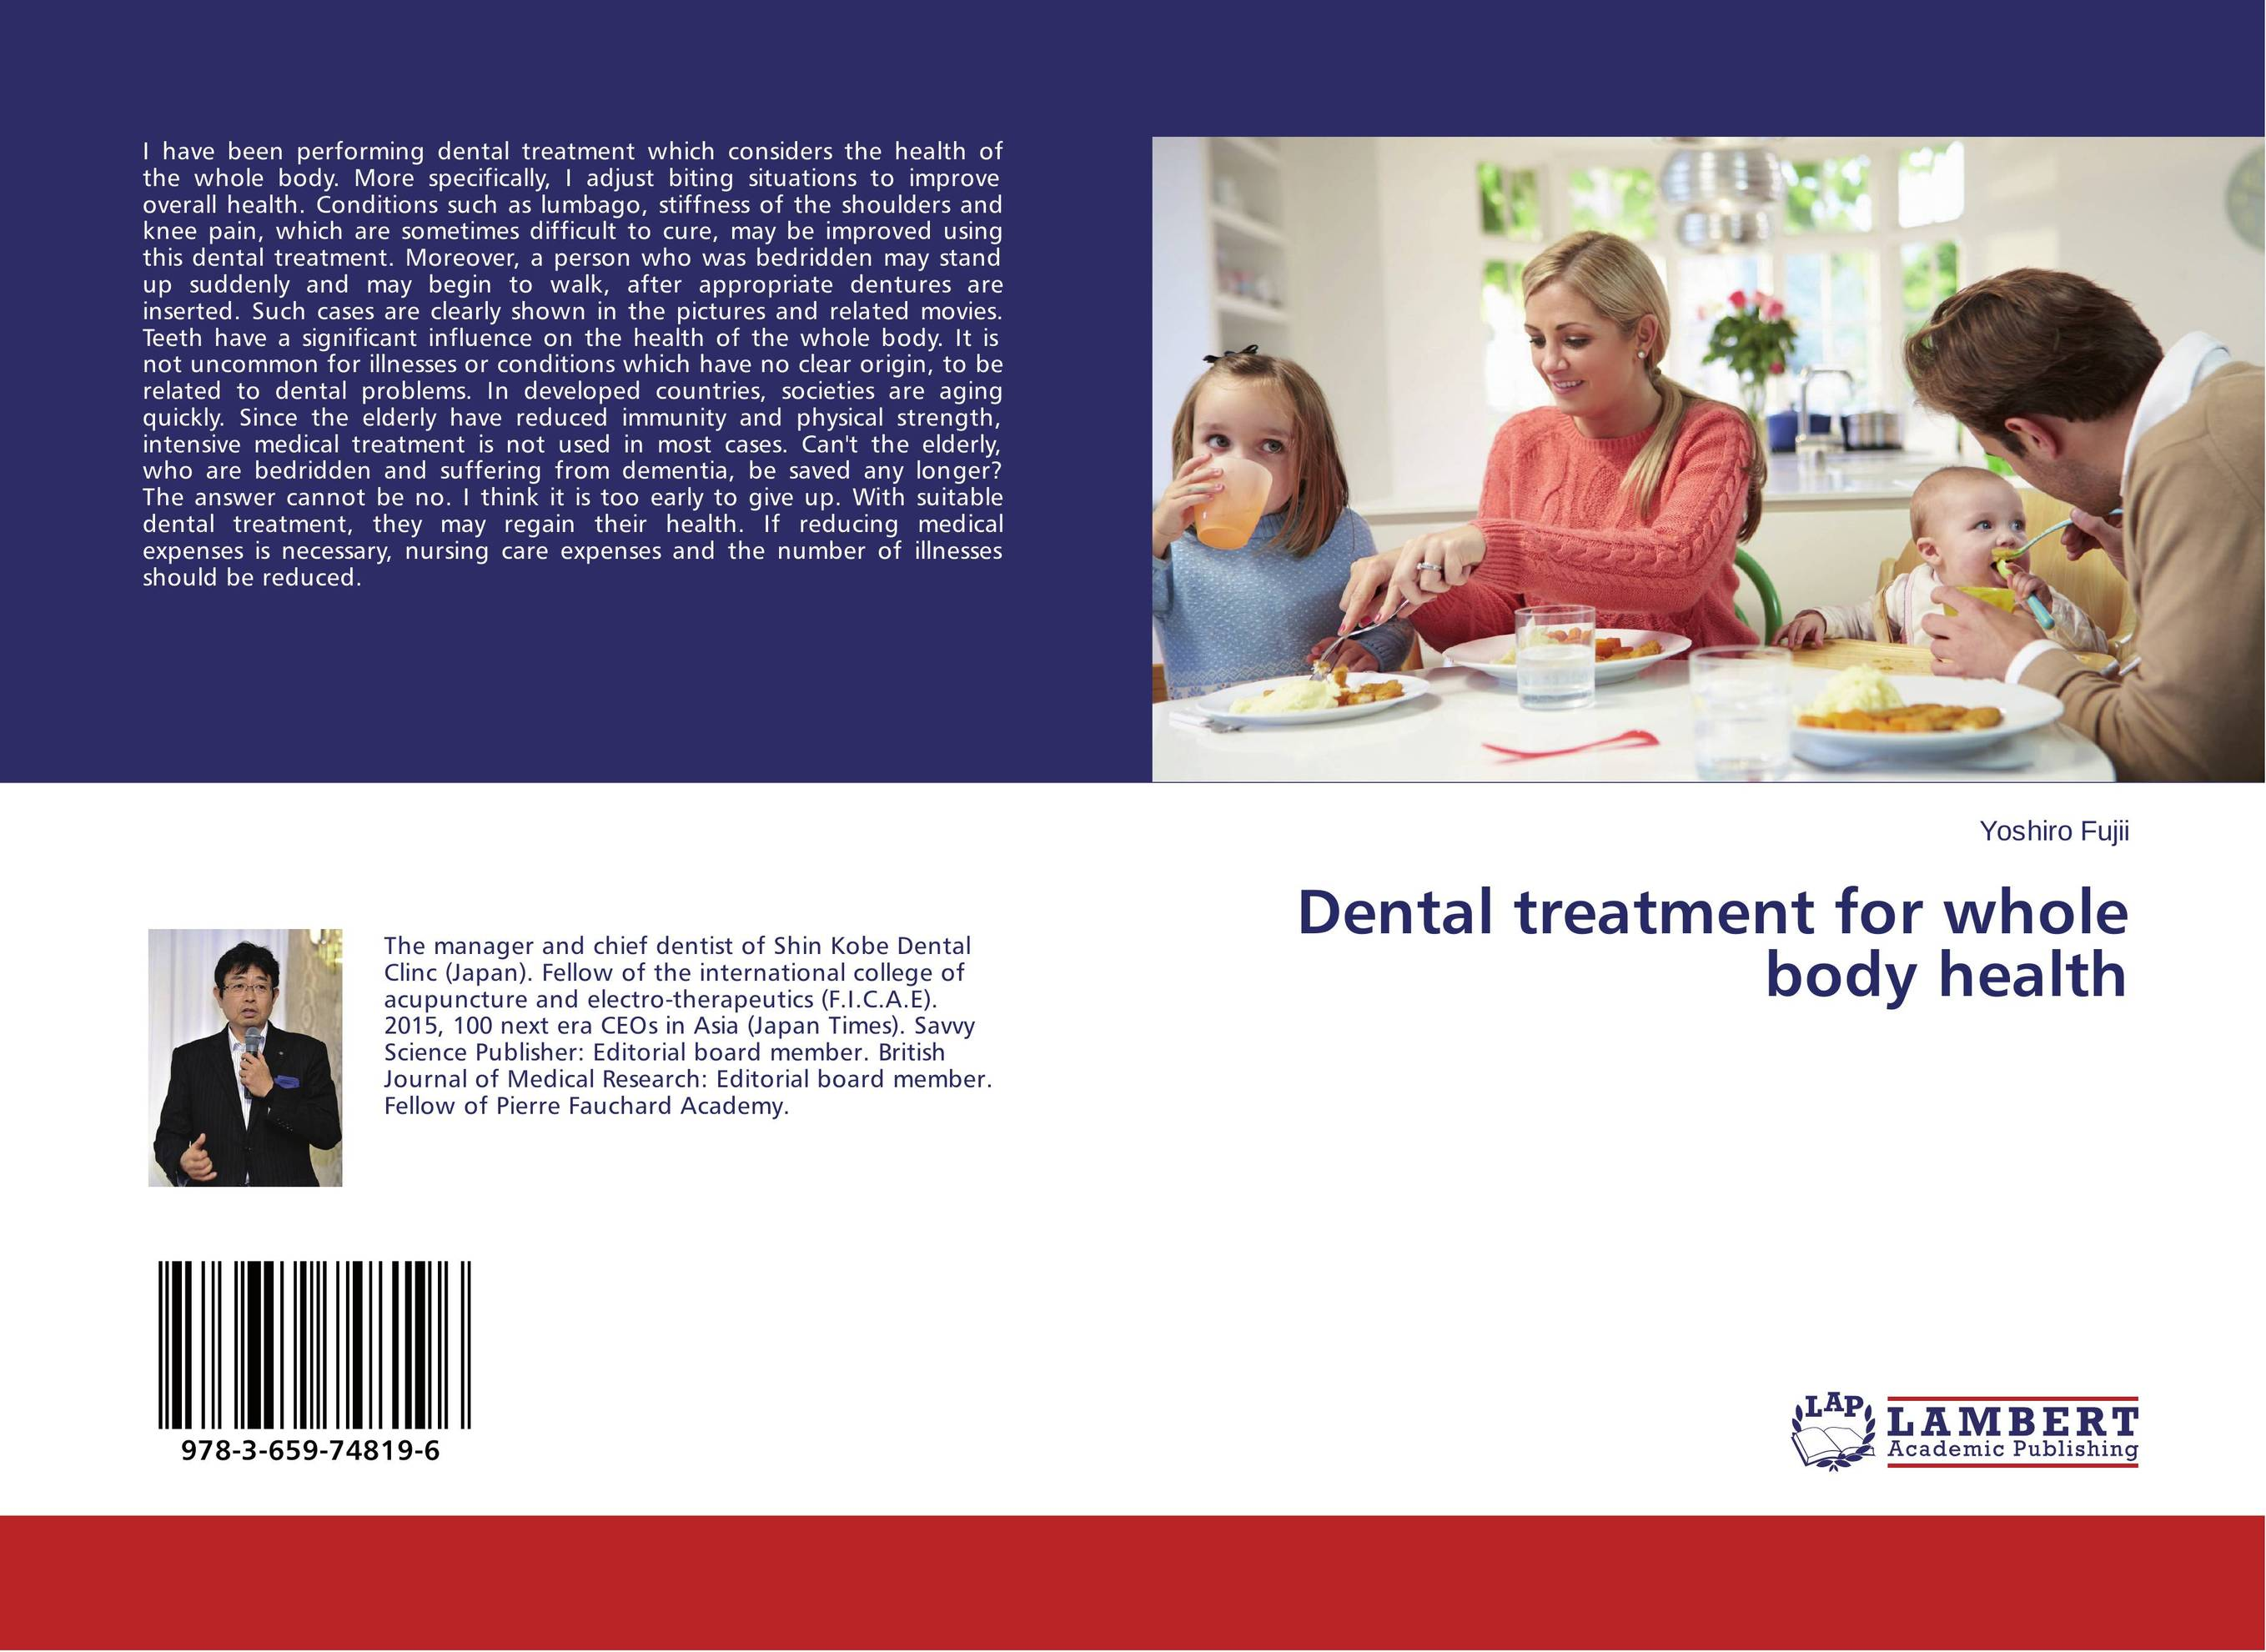 Dental treatment for whole body health